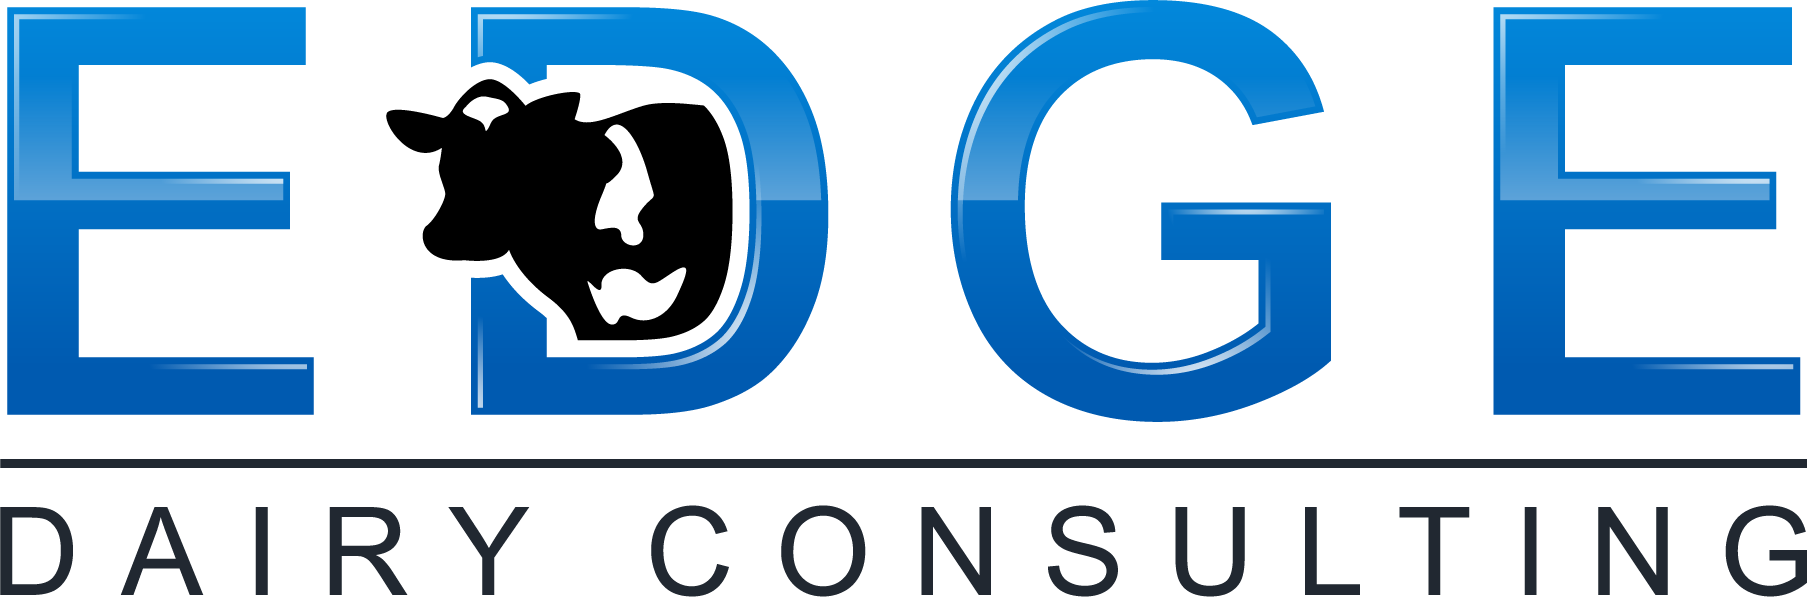 EDGE Dairy Consulting